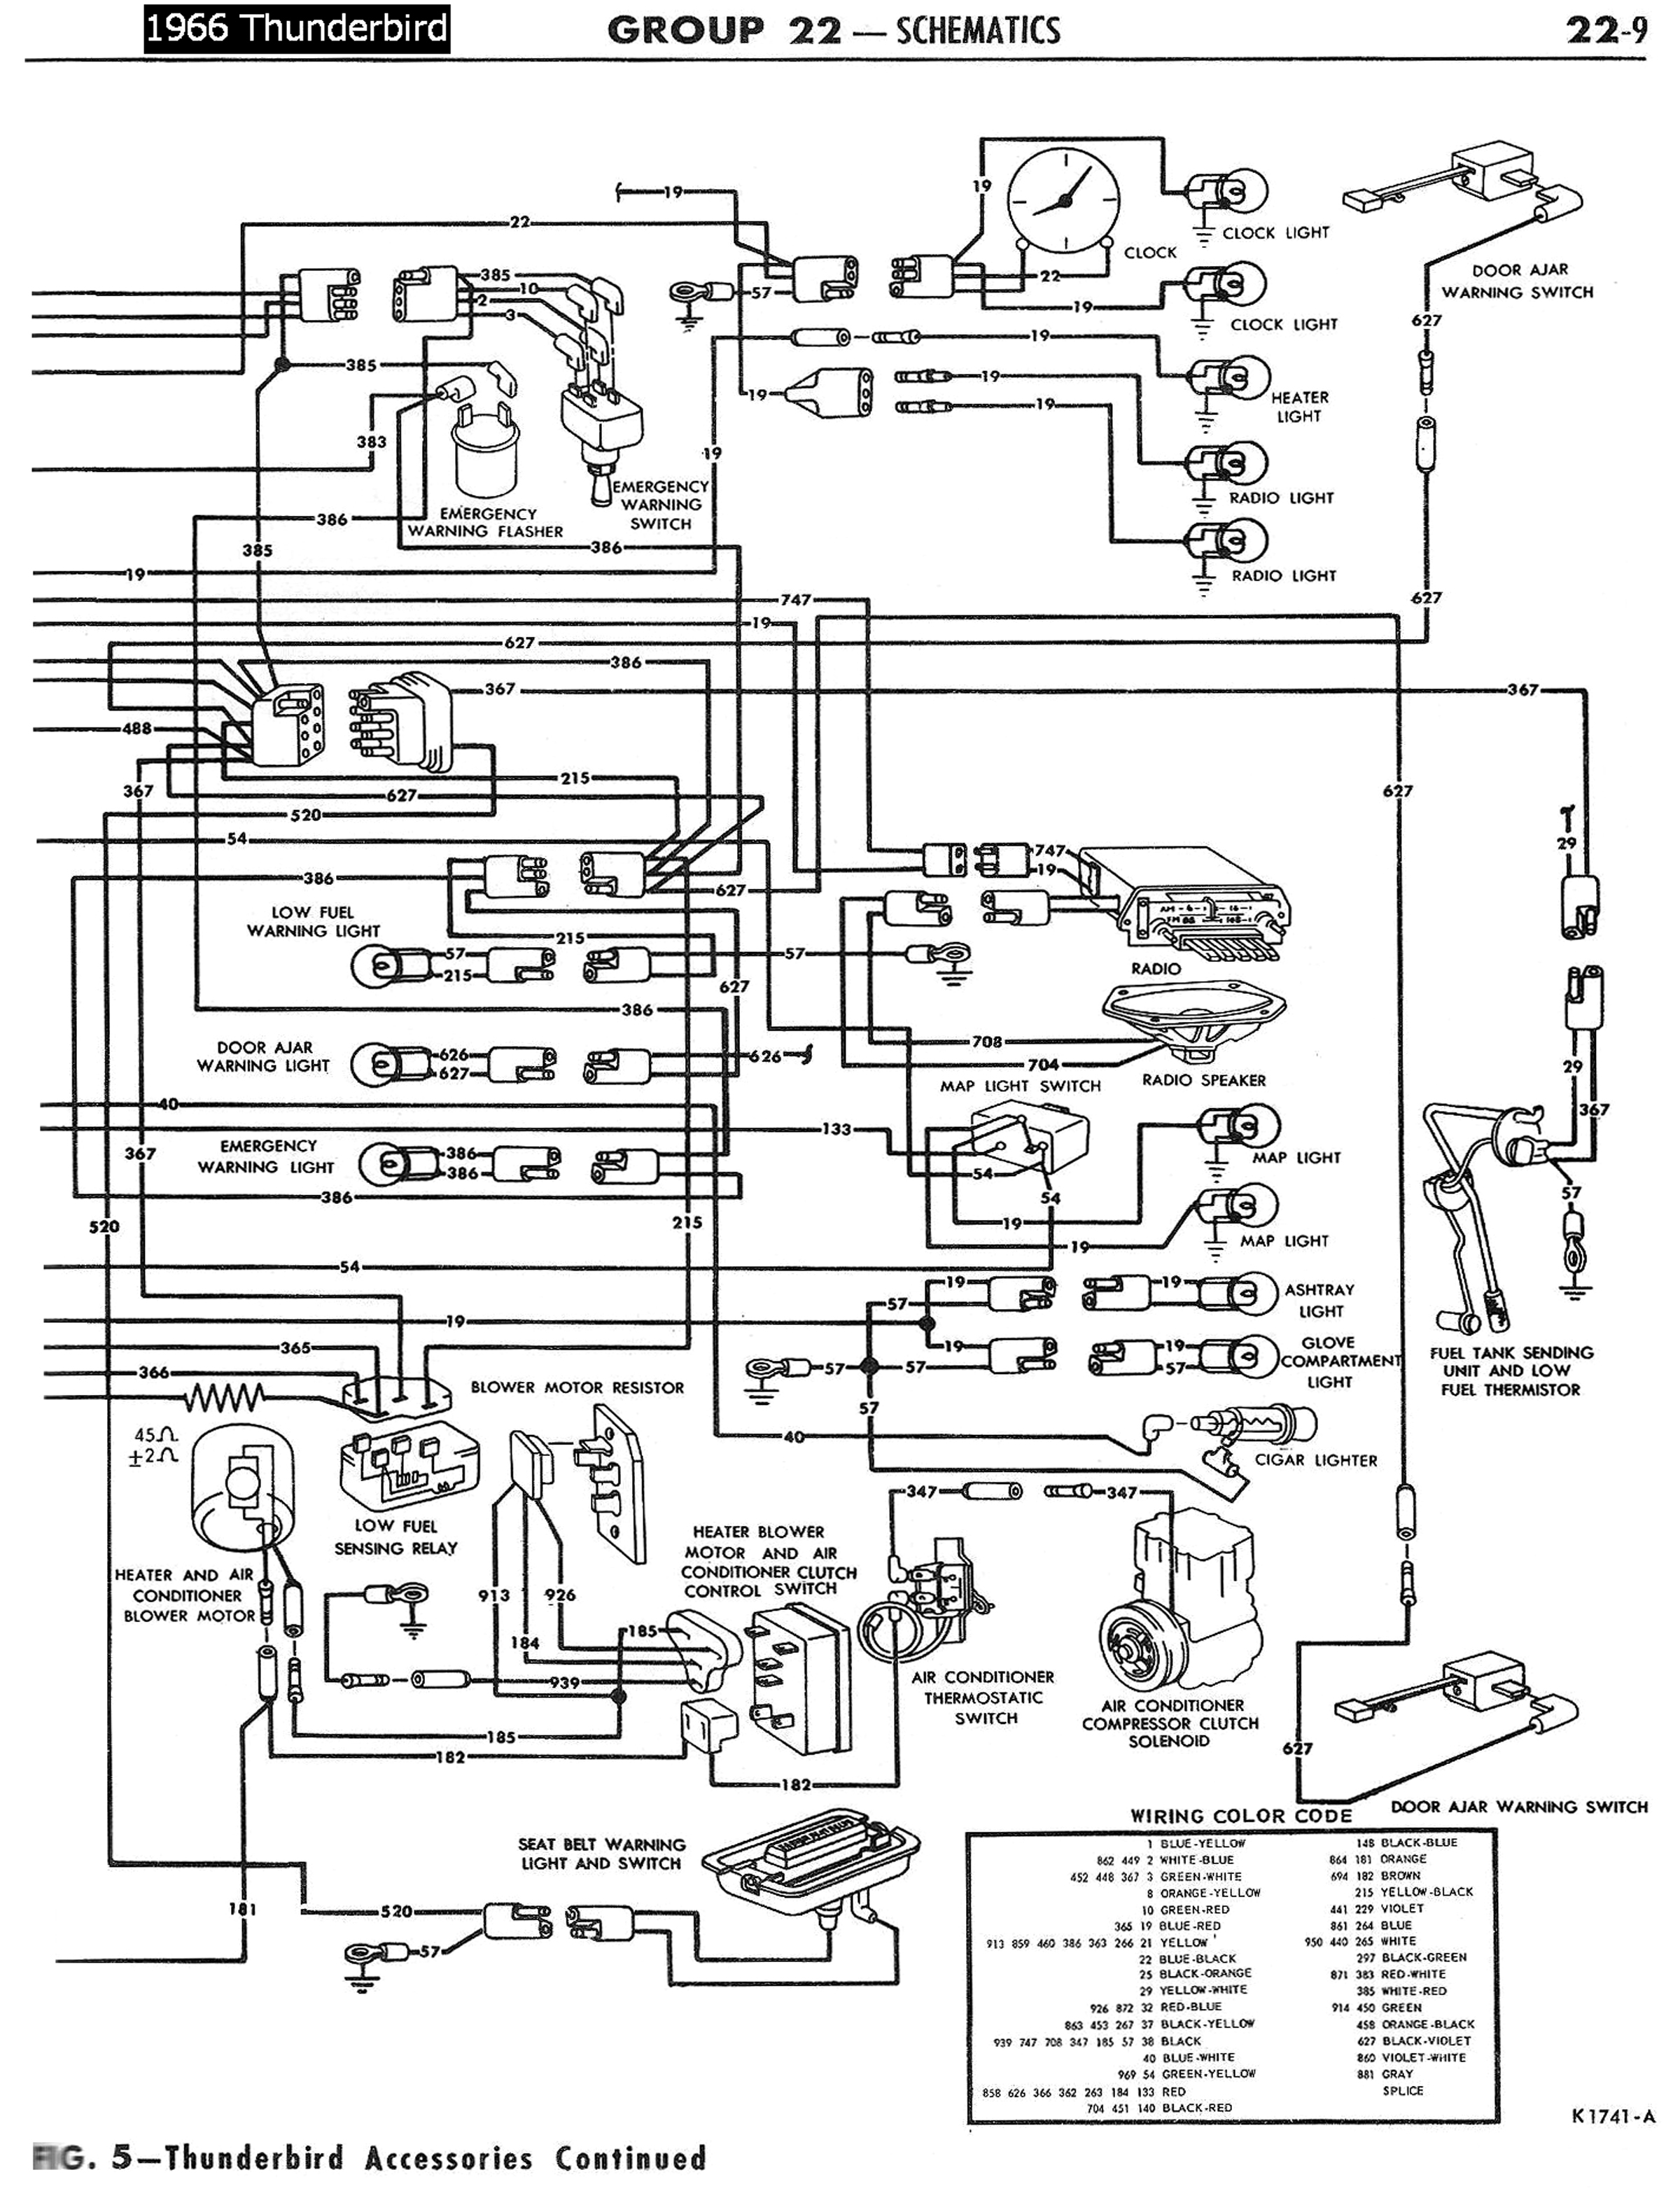 Pontiac Chieftain Wiring Diagram